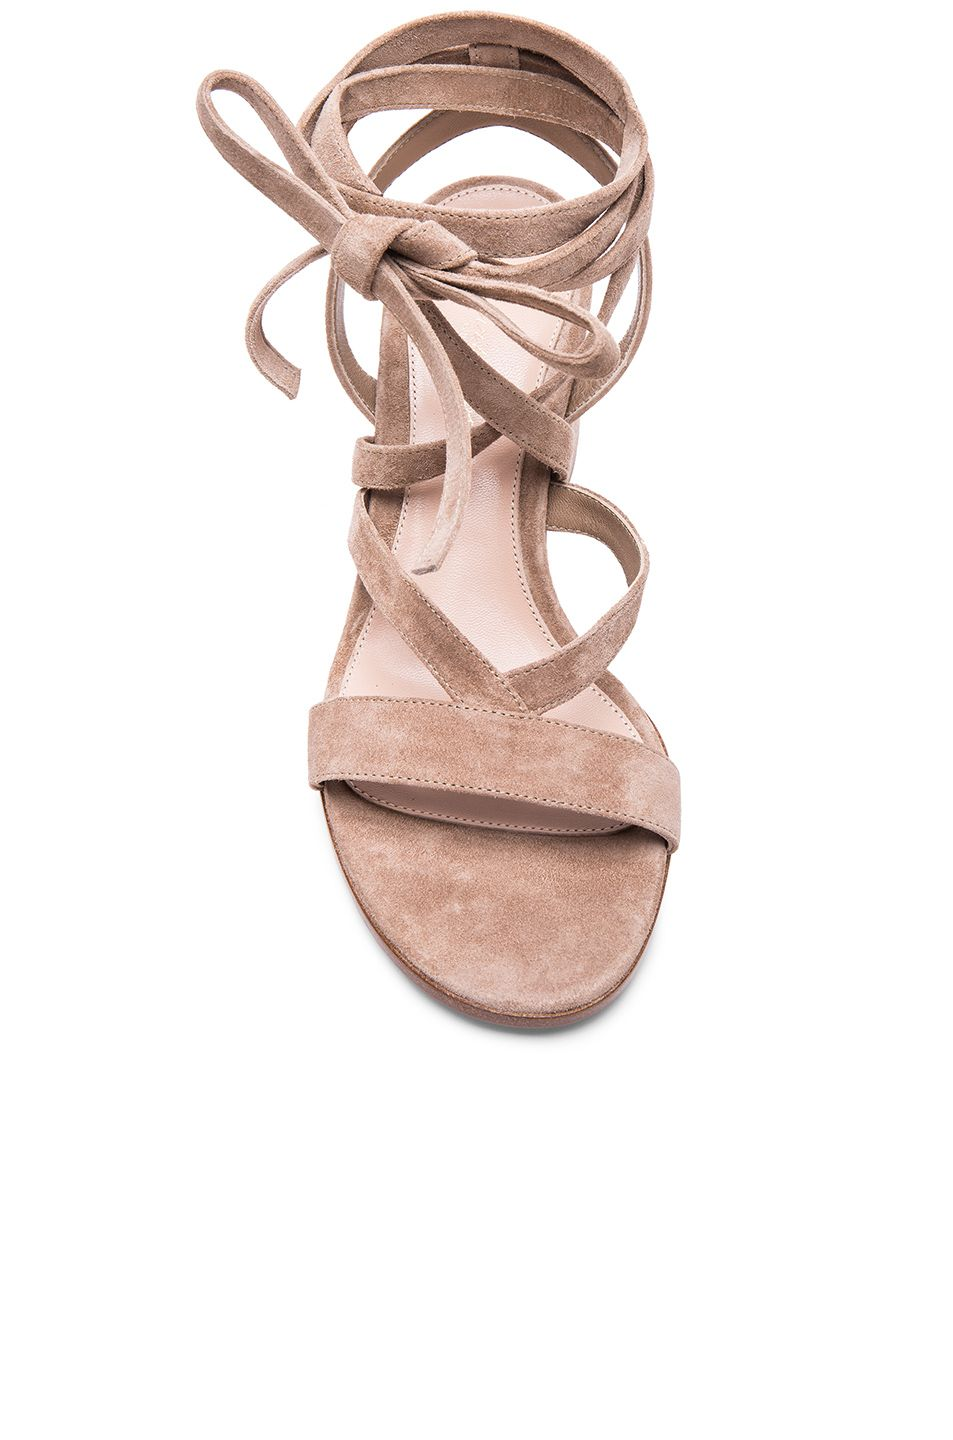 0a9534b0470 Image 4 of Gianvito Rossi Suede Janis Low Sandals in Bisque